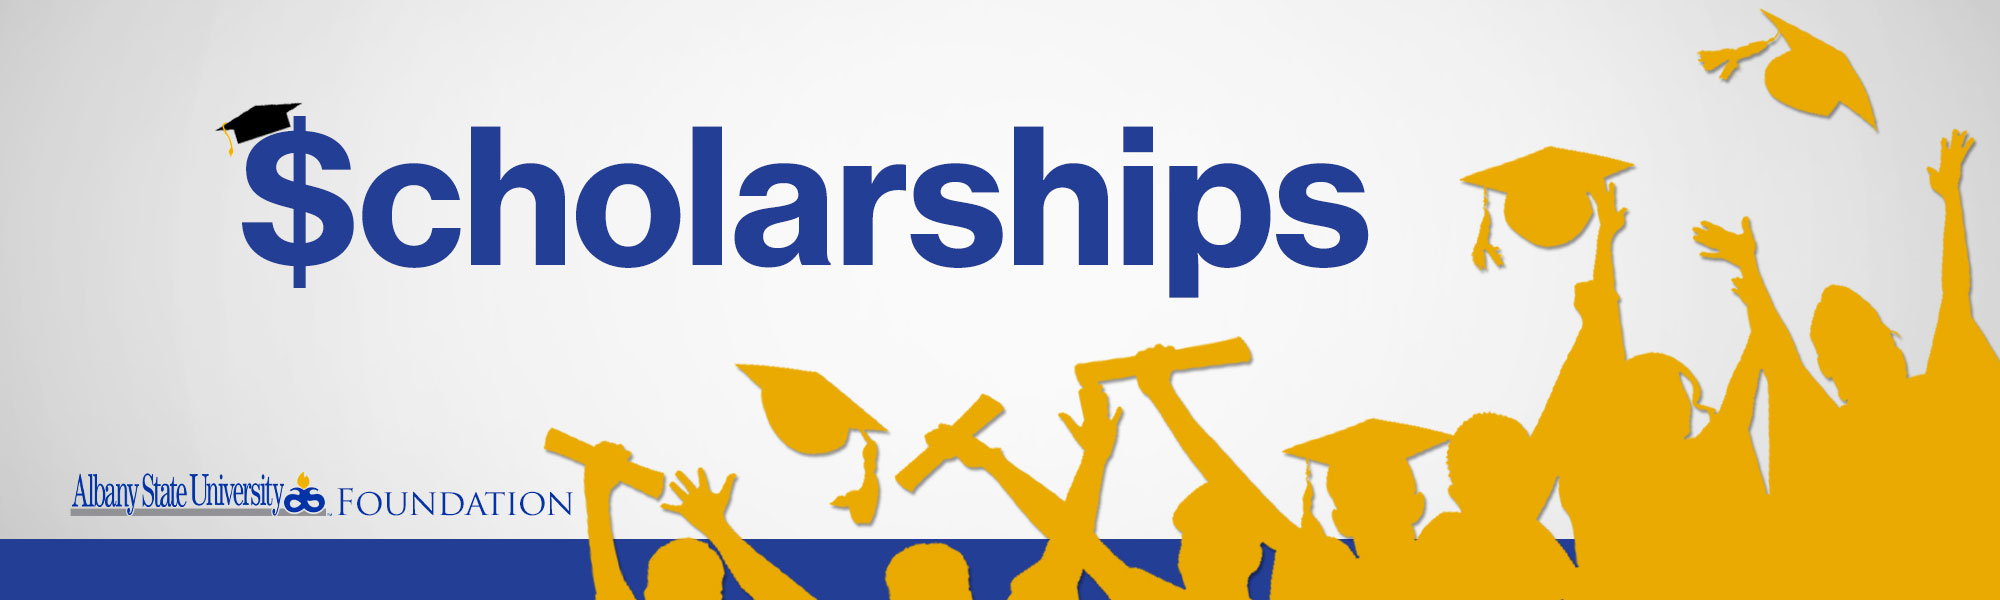 Scholarships Web Banner